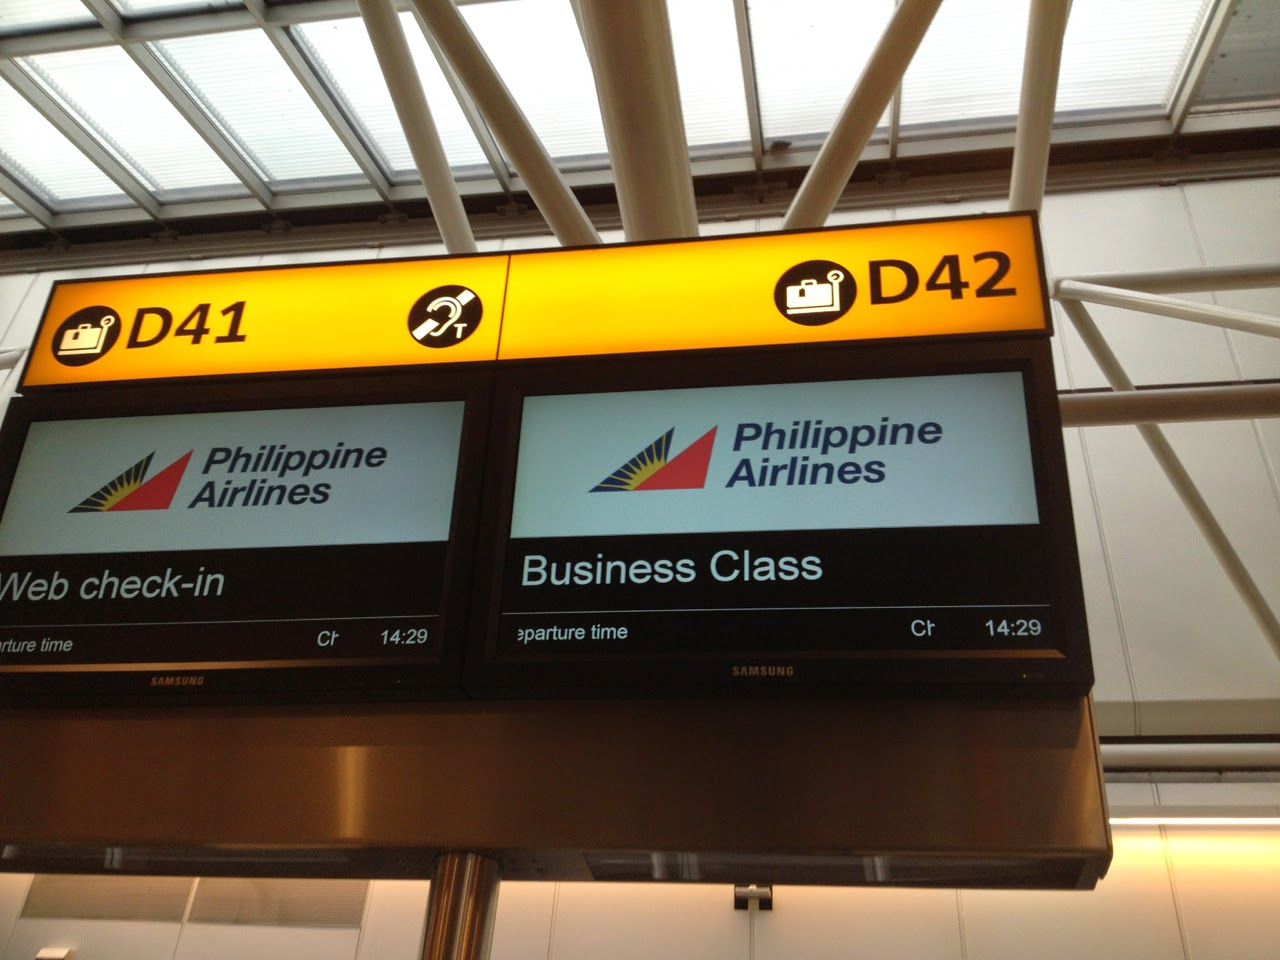 PAL check-in desk at Heathrow